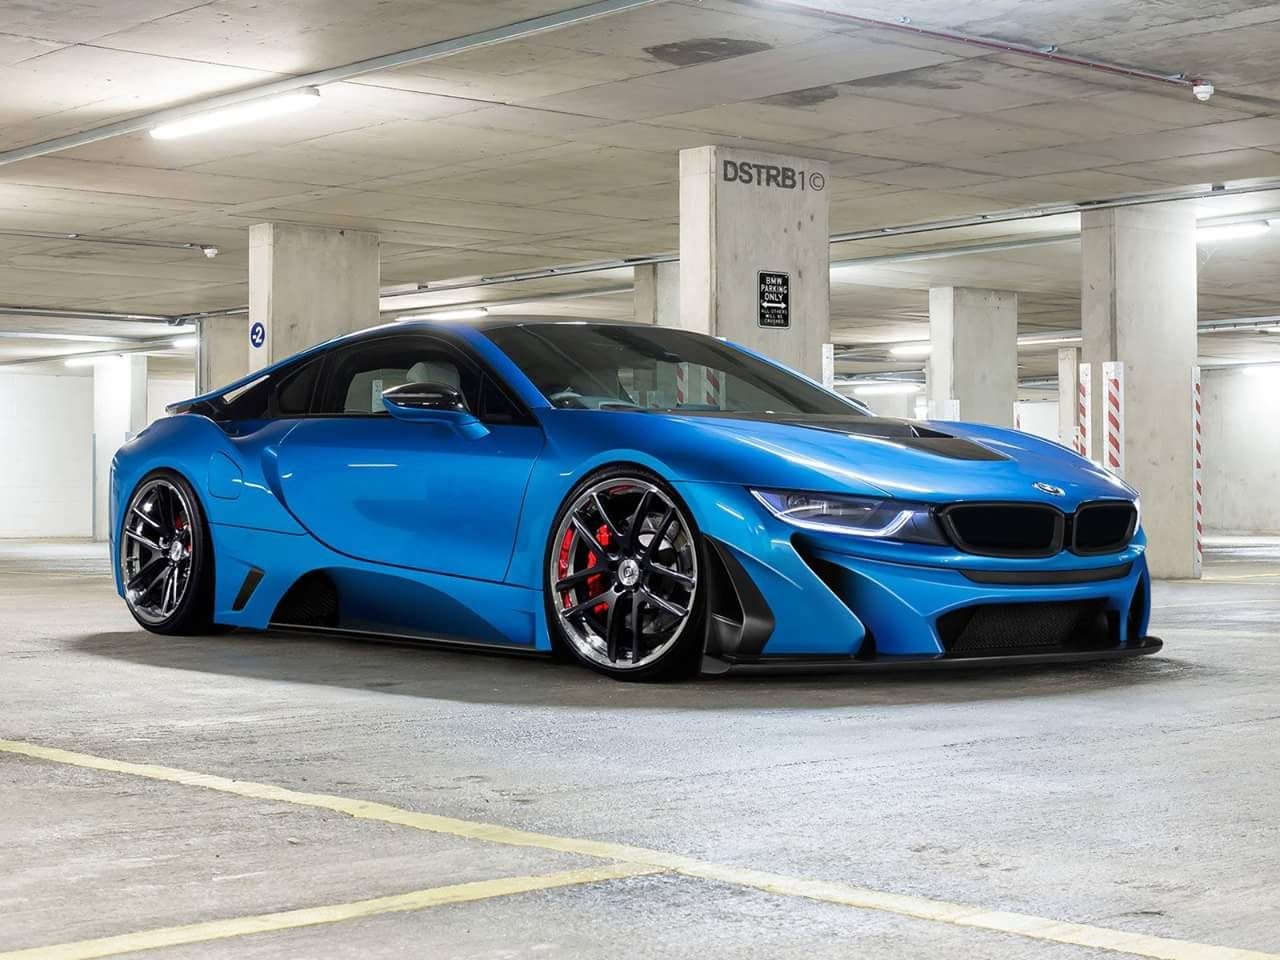 Blue Baby | Awesome Rides | Pinterest | BMW, Cars and Super car